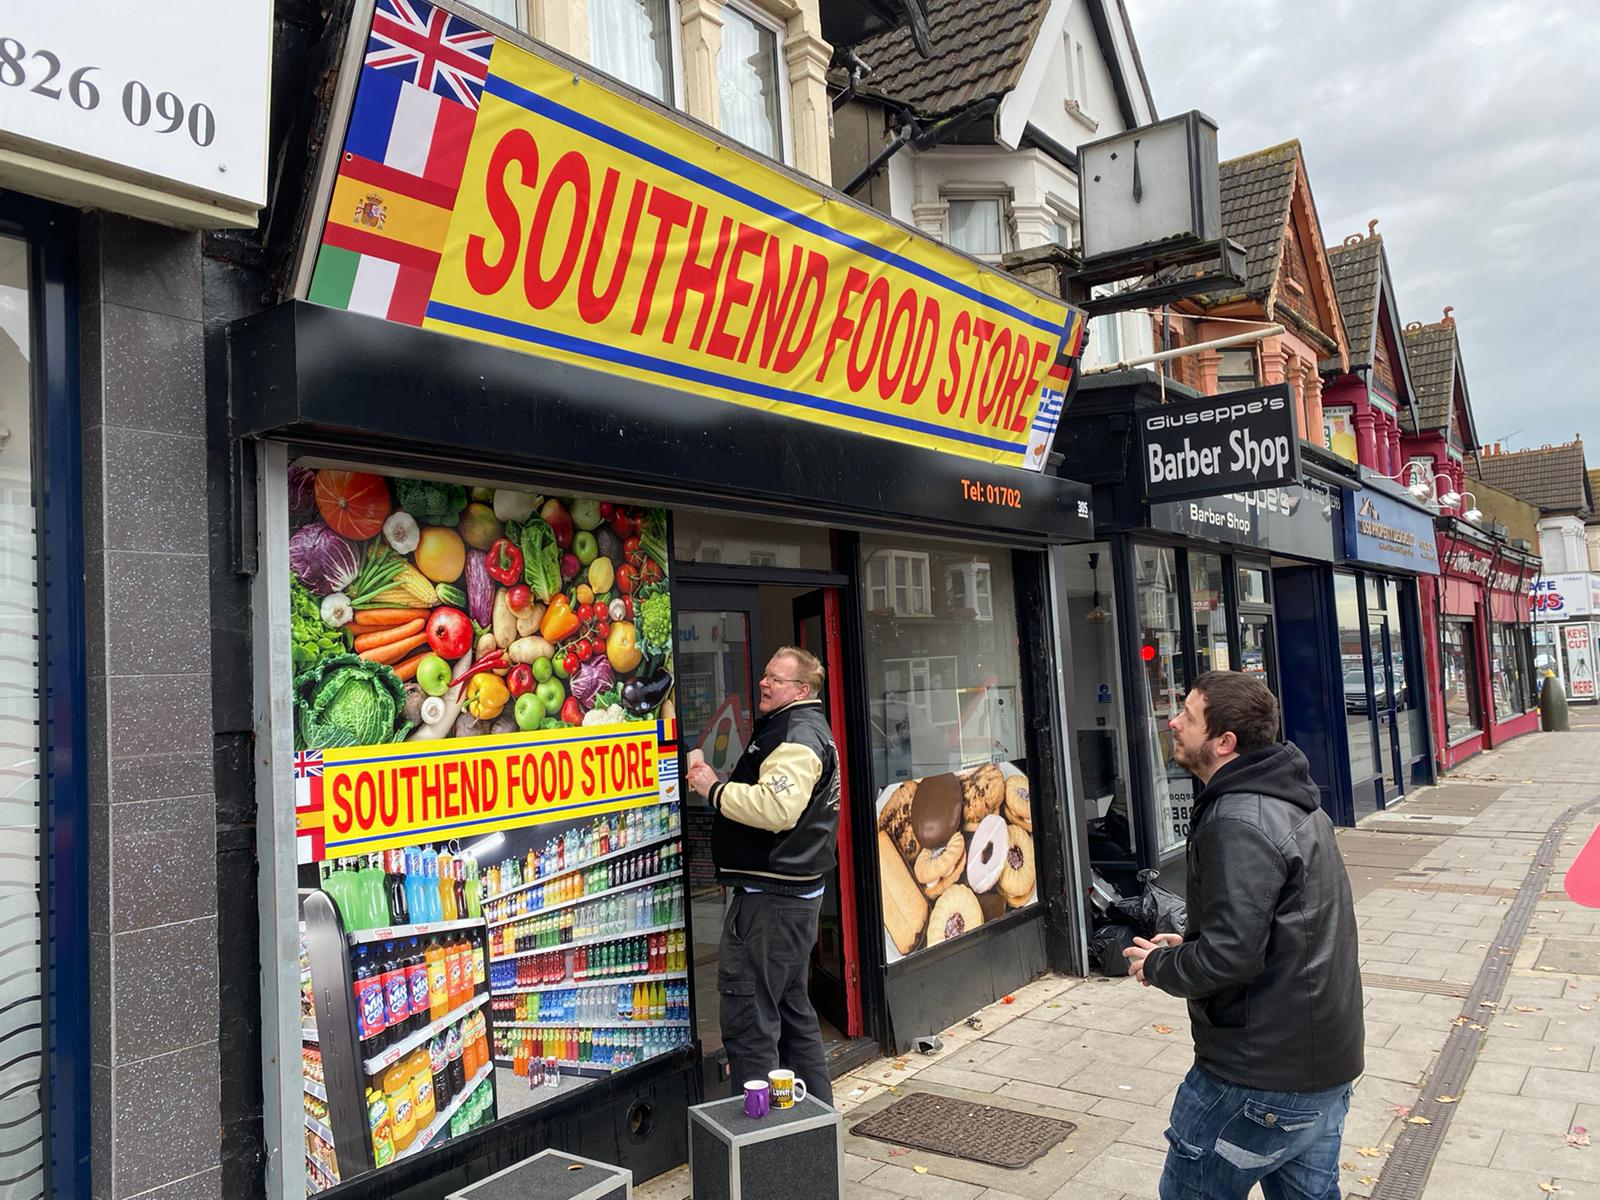 Southend Food Store